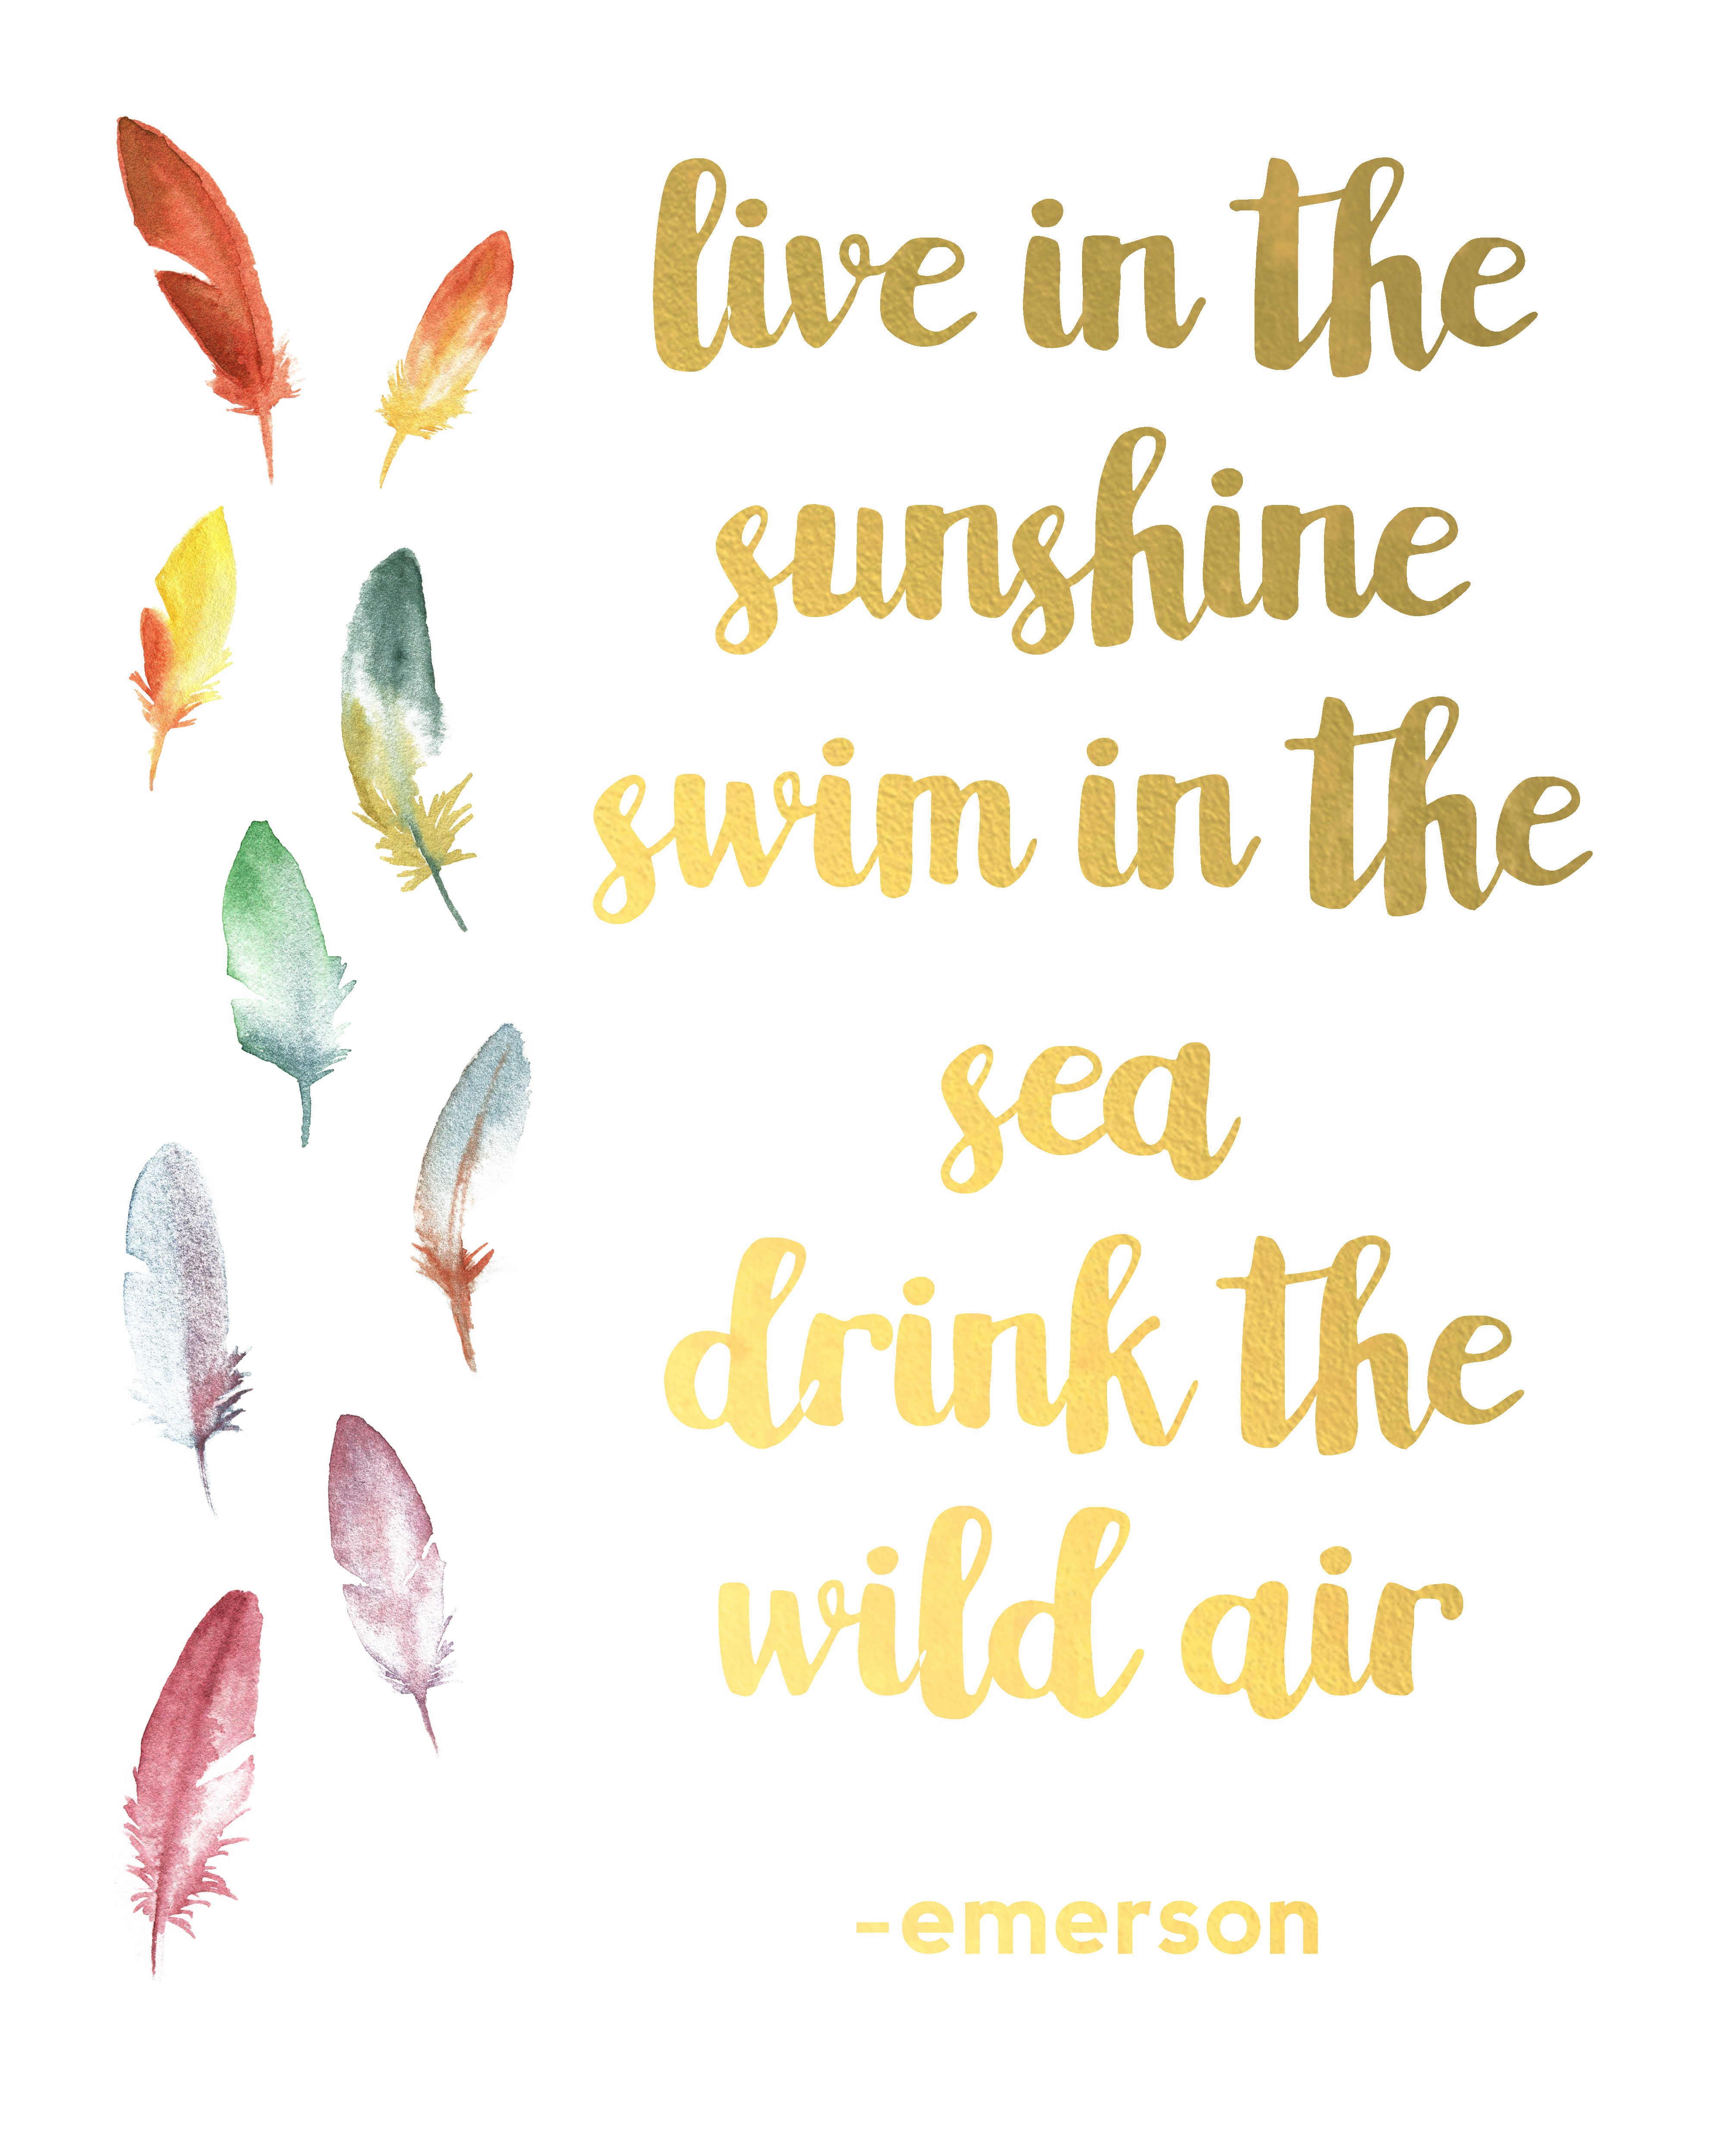 Free Printable Travel Wall Art - Live in the Sunshine, Swim in the Sea, Drink the wild Air